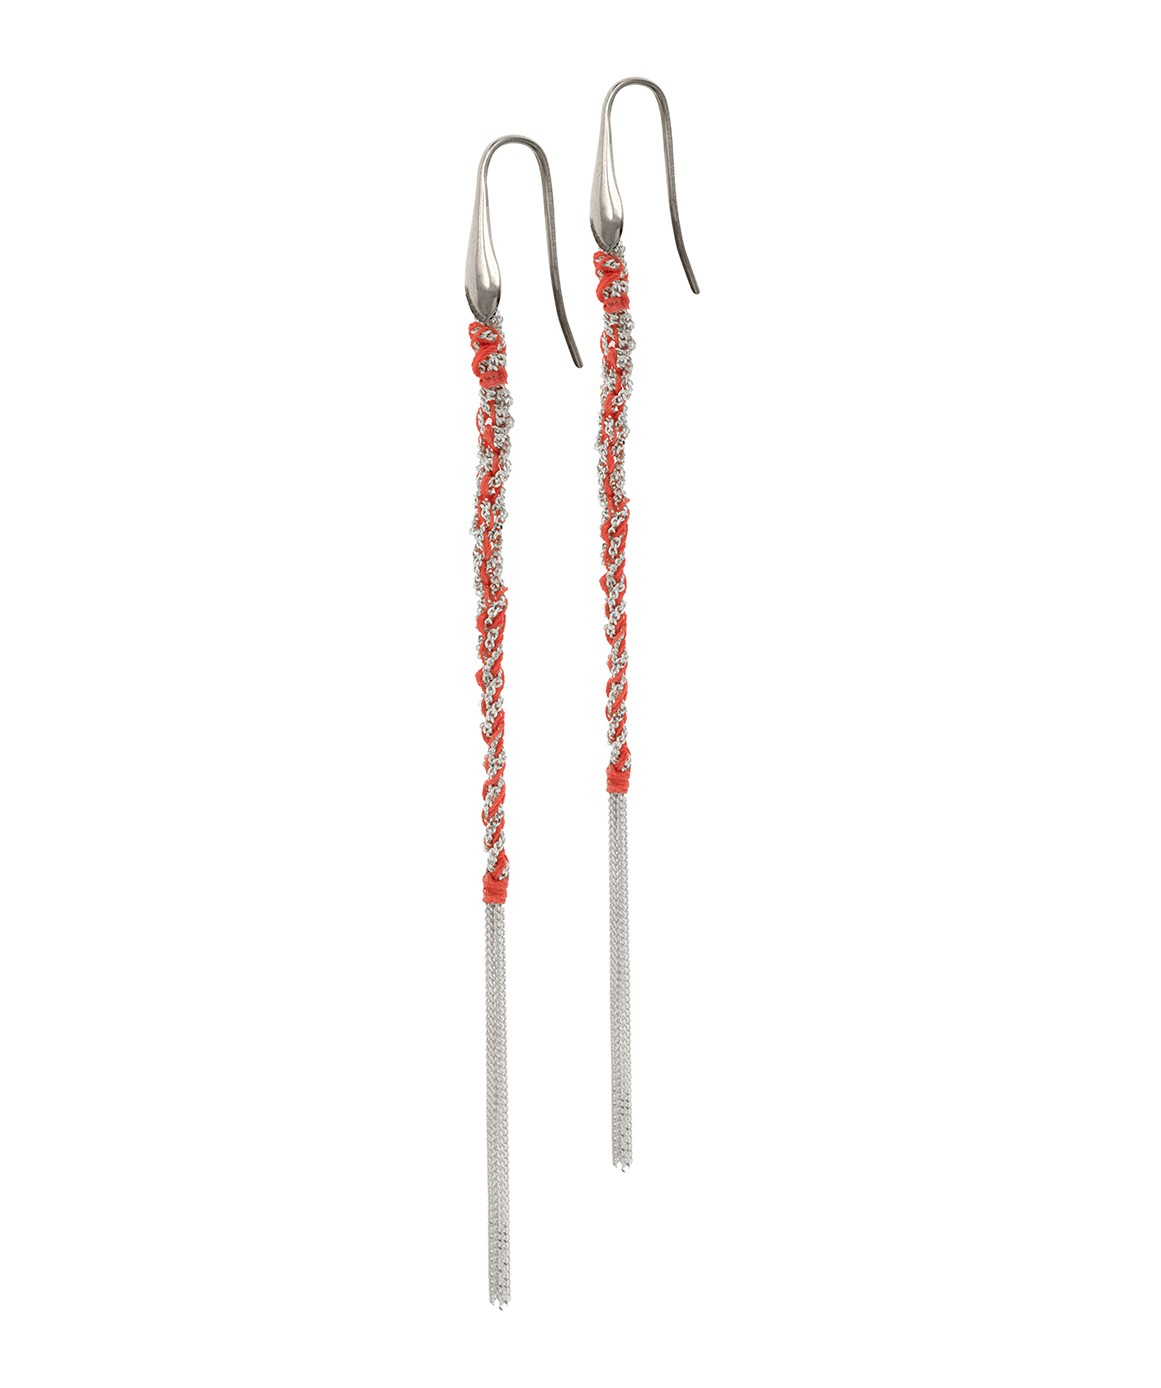 TWIST Earrings in Sterling Silver Rhodium plated. Fabric: Red